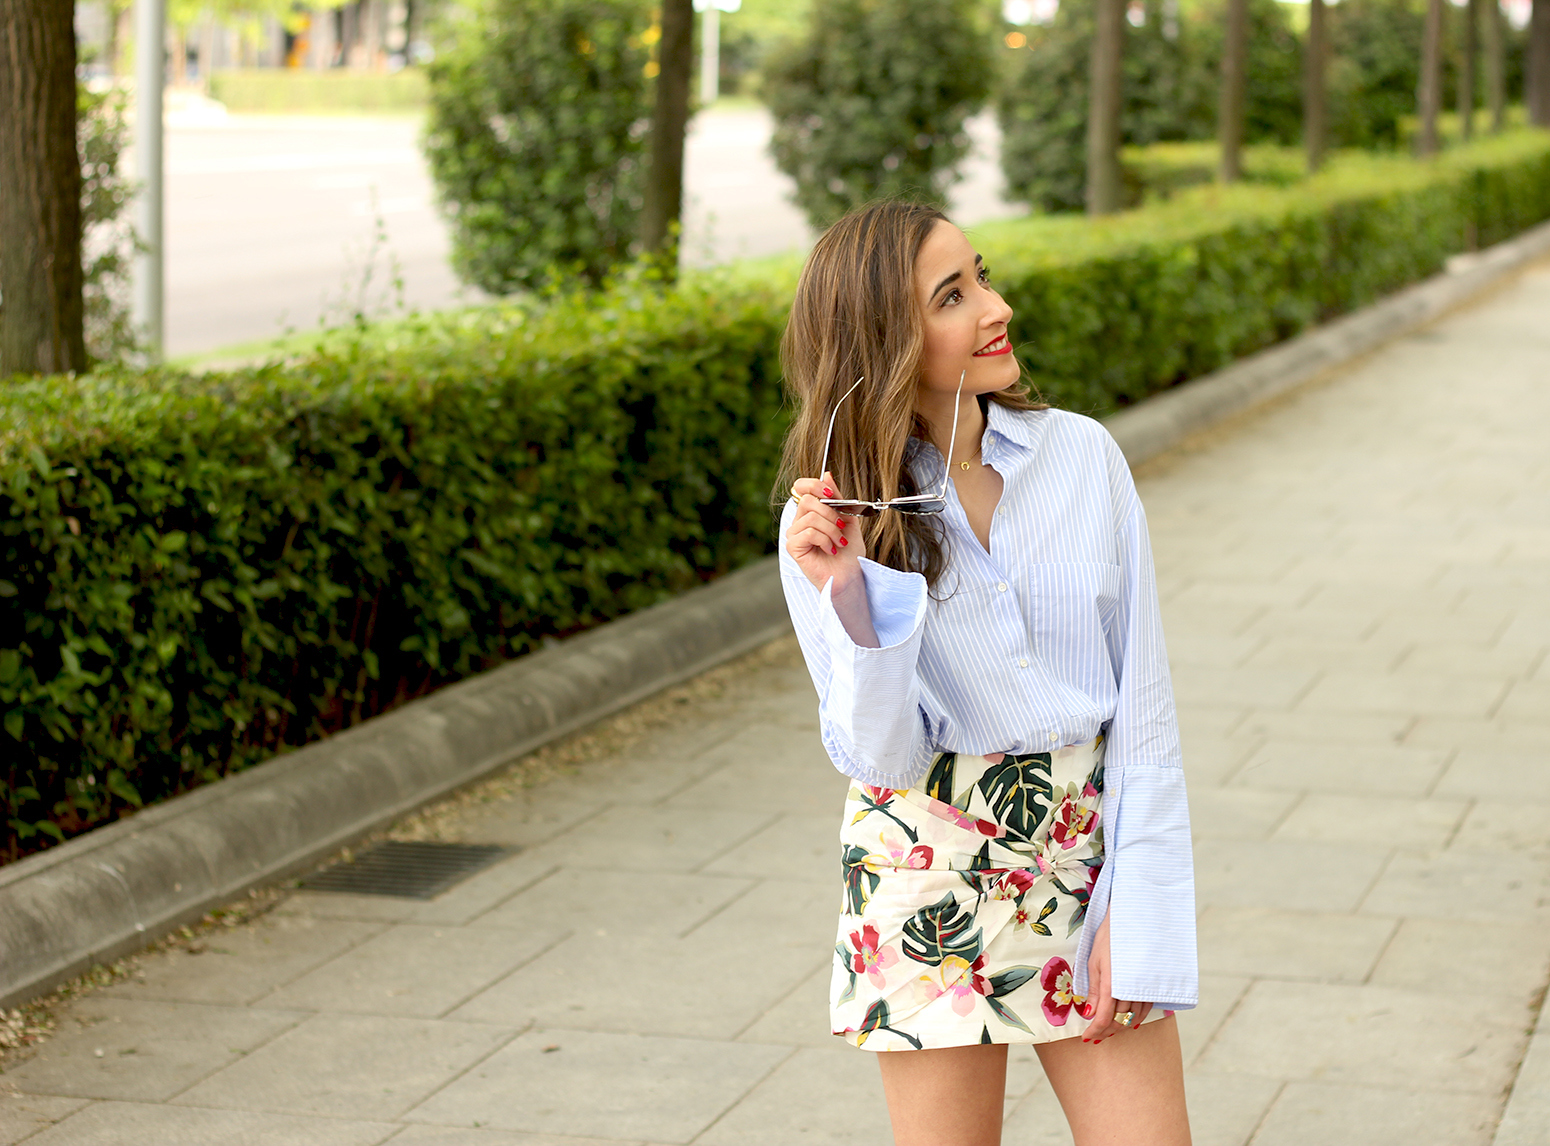 Floral print shorts striped shirt converse summer style fashion05